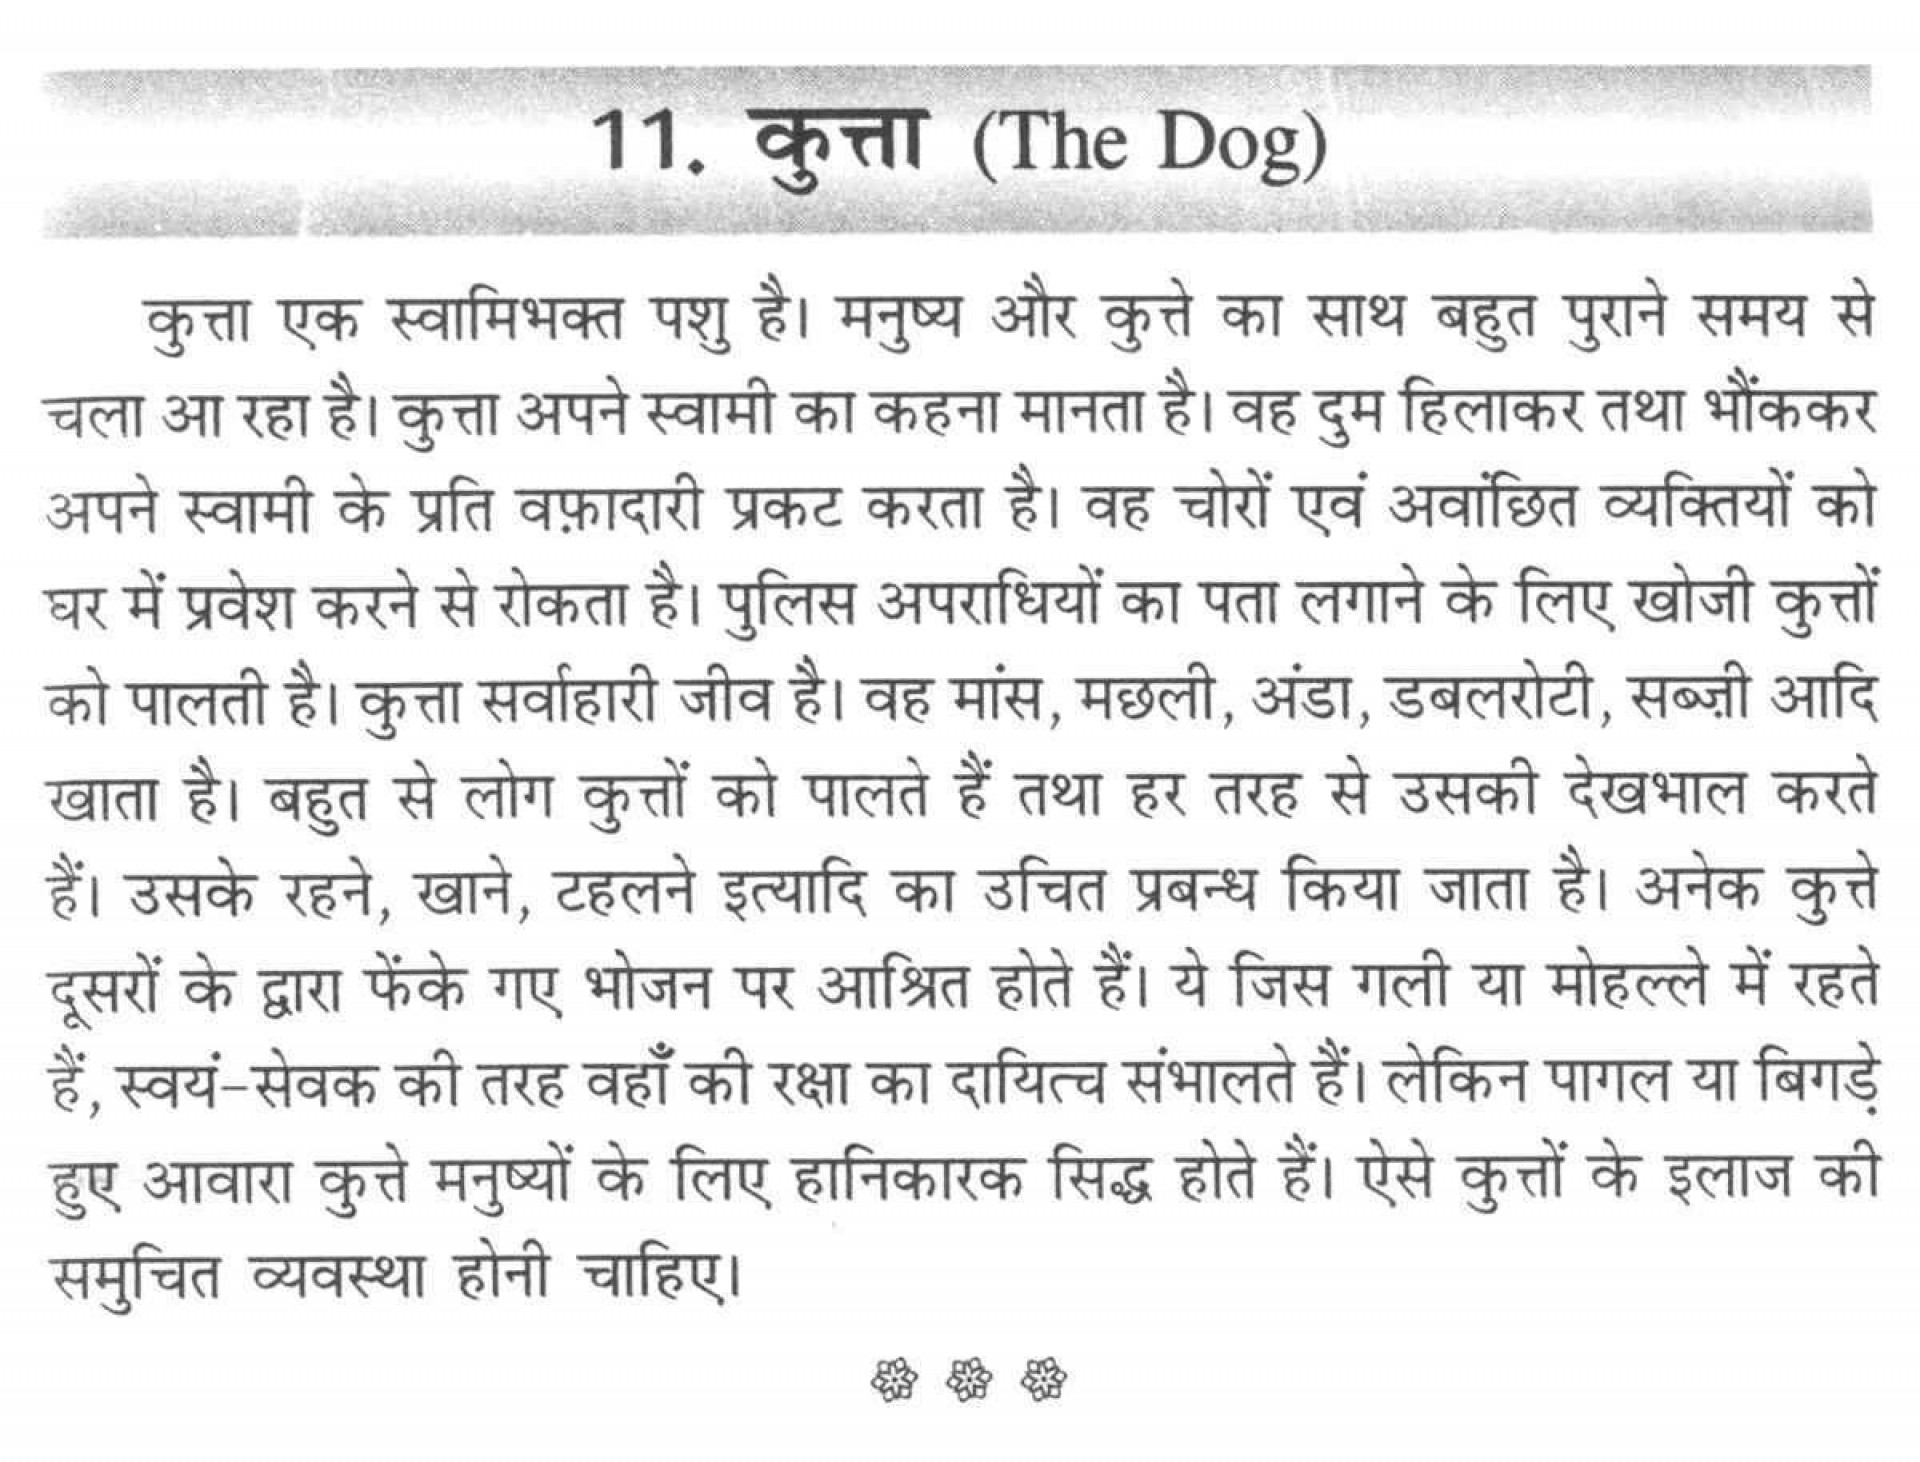 011 Aa110 Thumb Essay On Love For Animals In Hindi Fascinating Towards And Birds 1920